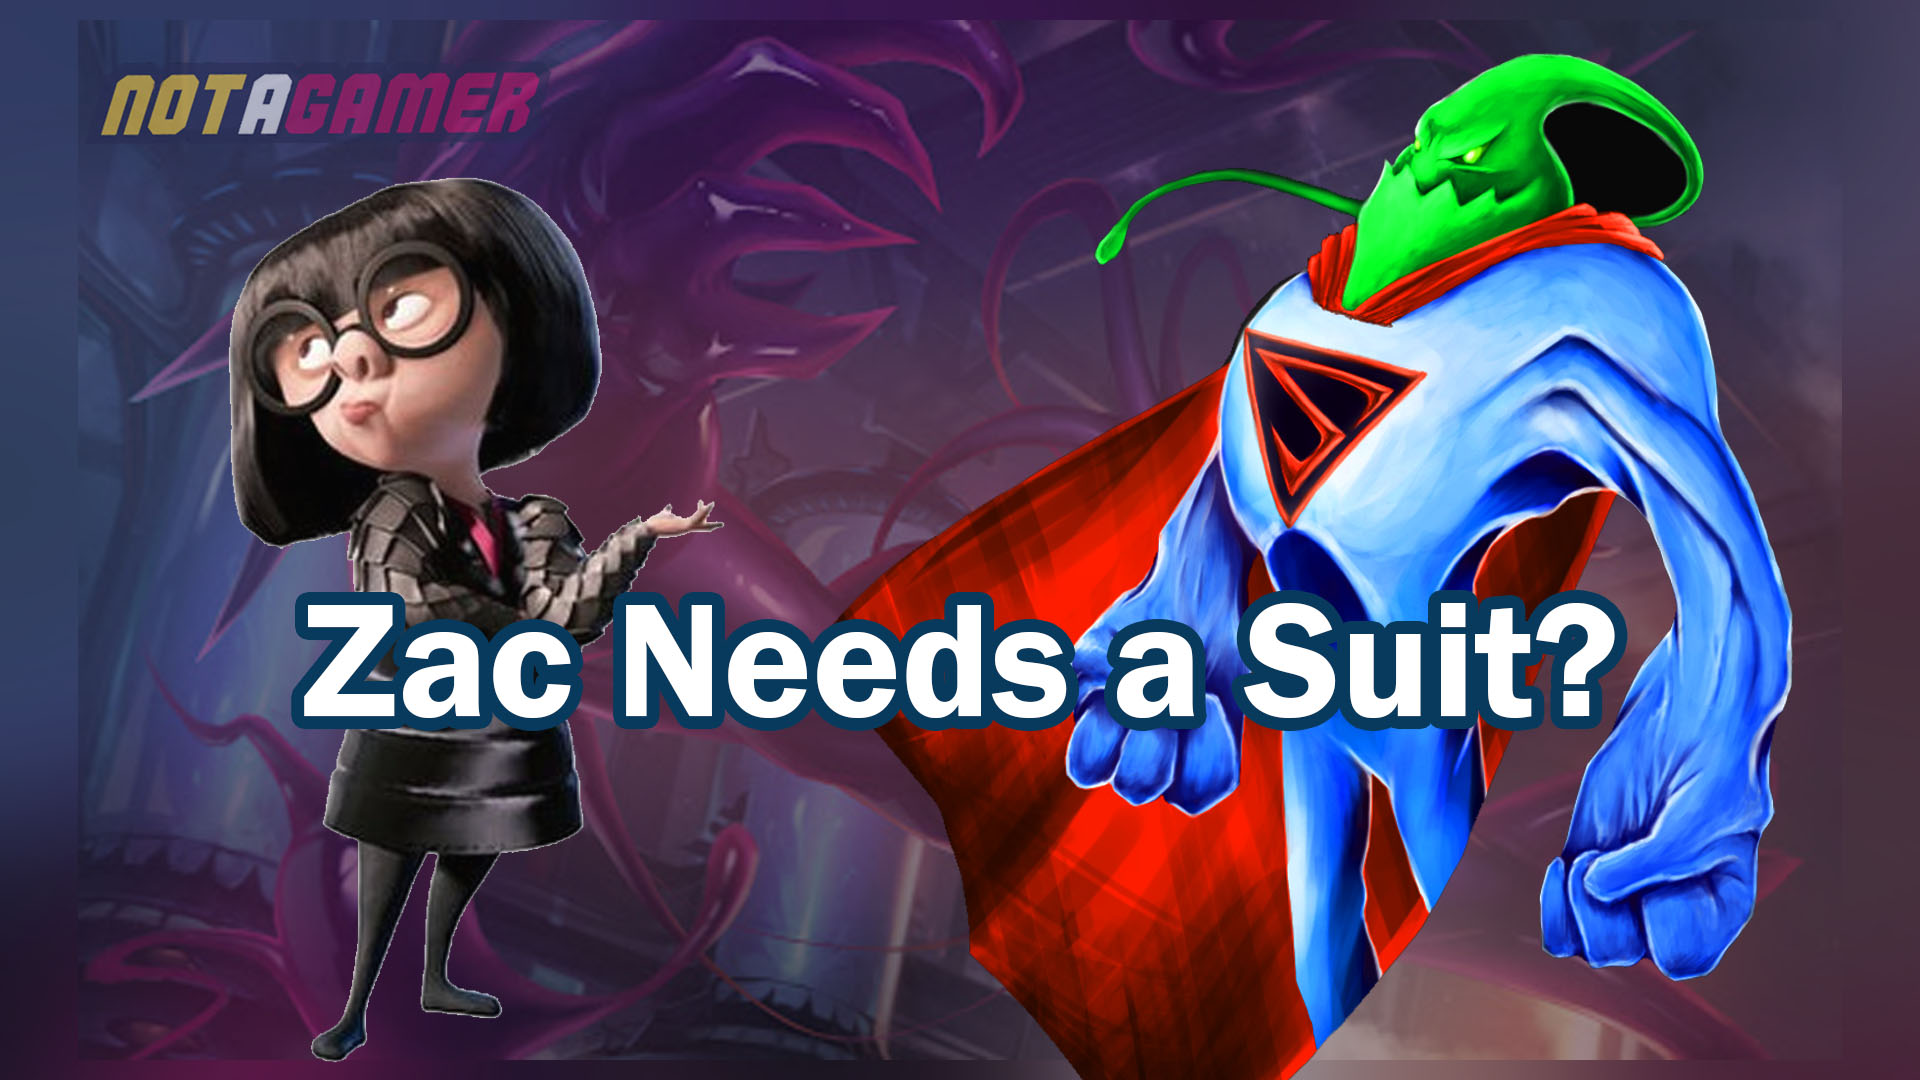 League Of Legends Edna Mode From The Incredibles Should Design